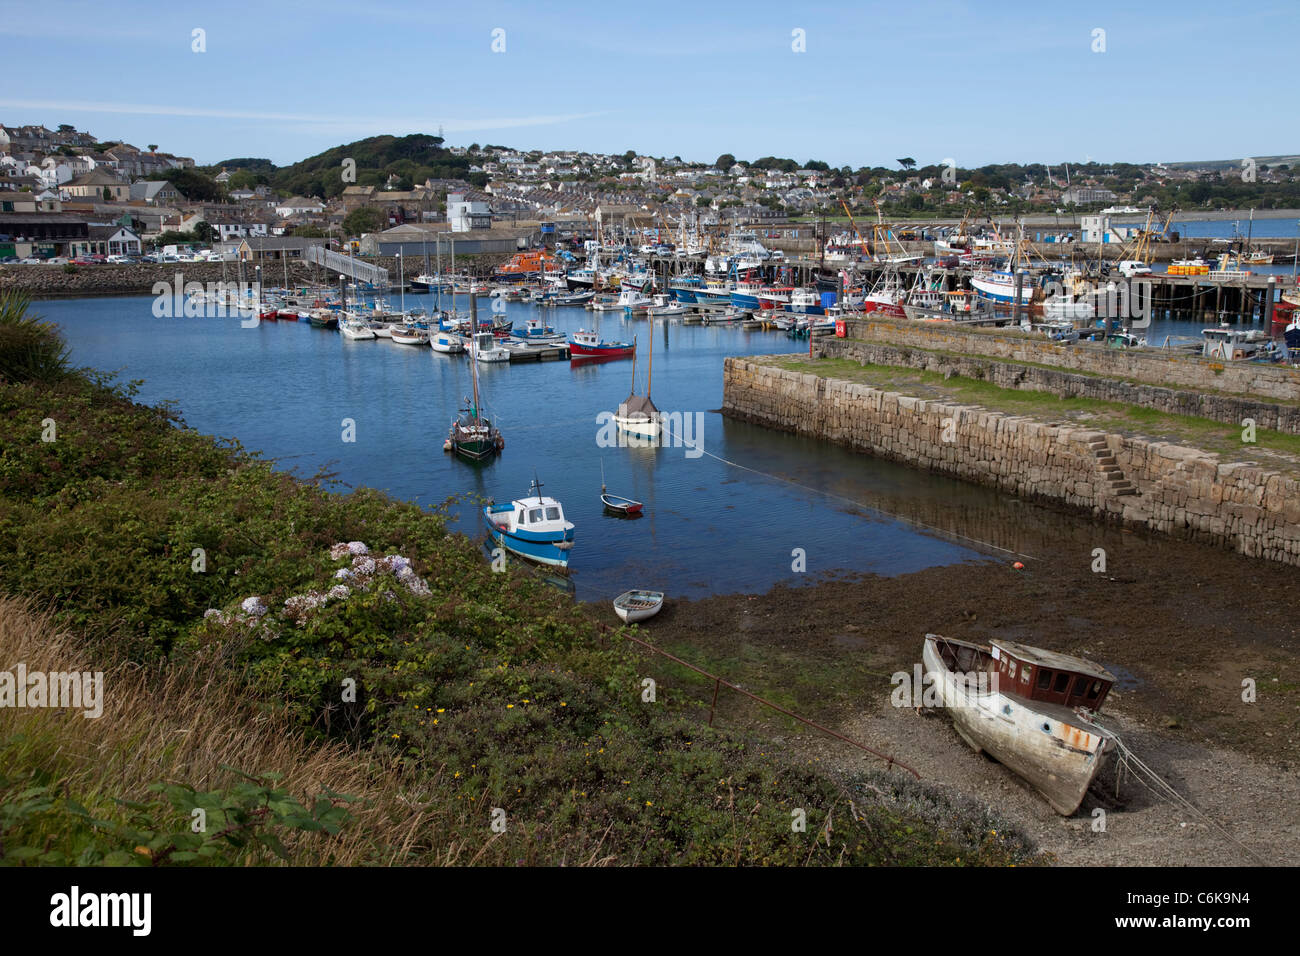 Fishing boats and pleasure craft Newlyn harbour with town in background Cornwall UK Stock Photo